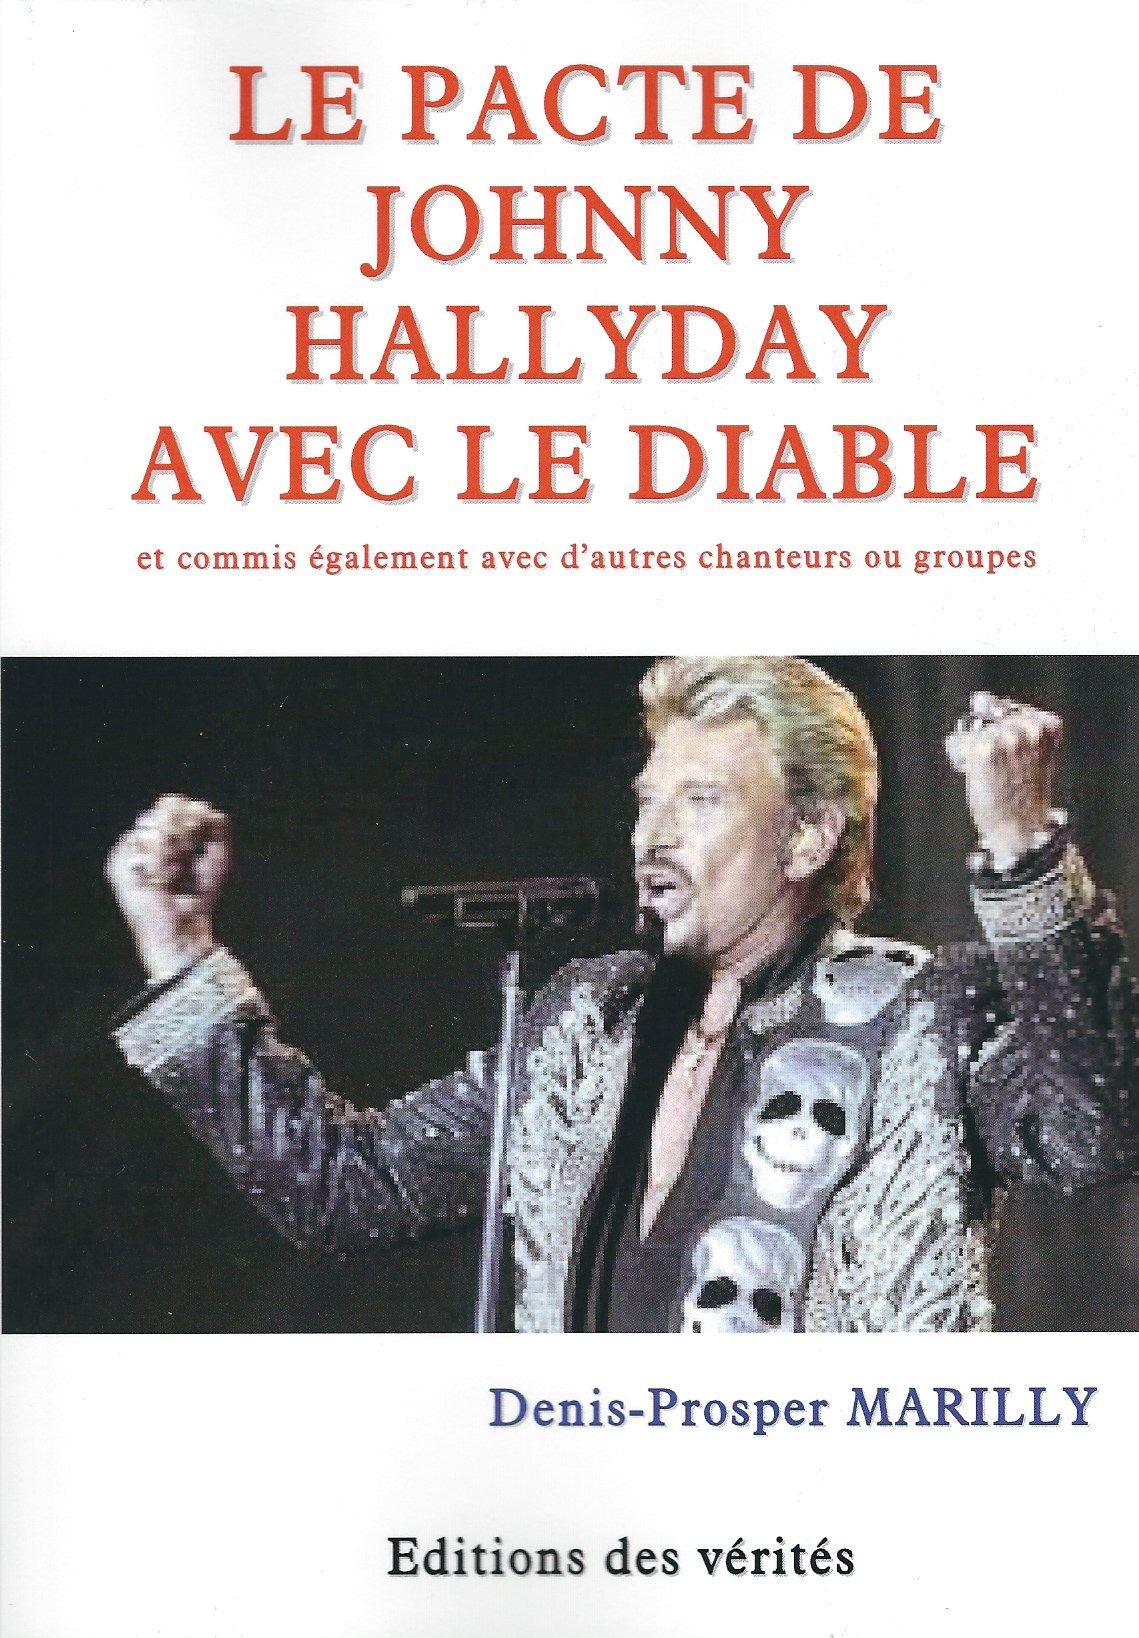 Le pacte de Johnny Hallyday avec le diable - Denis-Prosper MARILLY